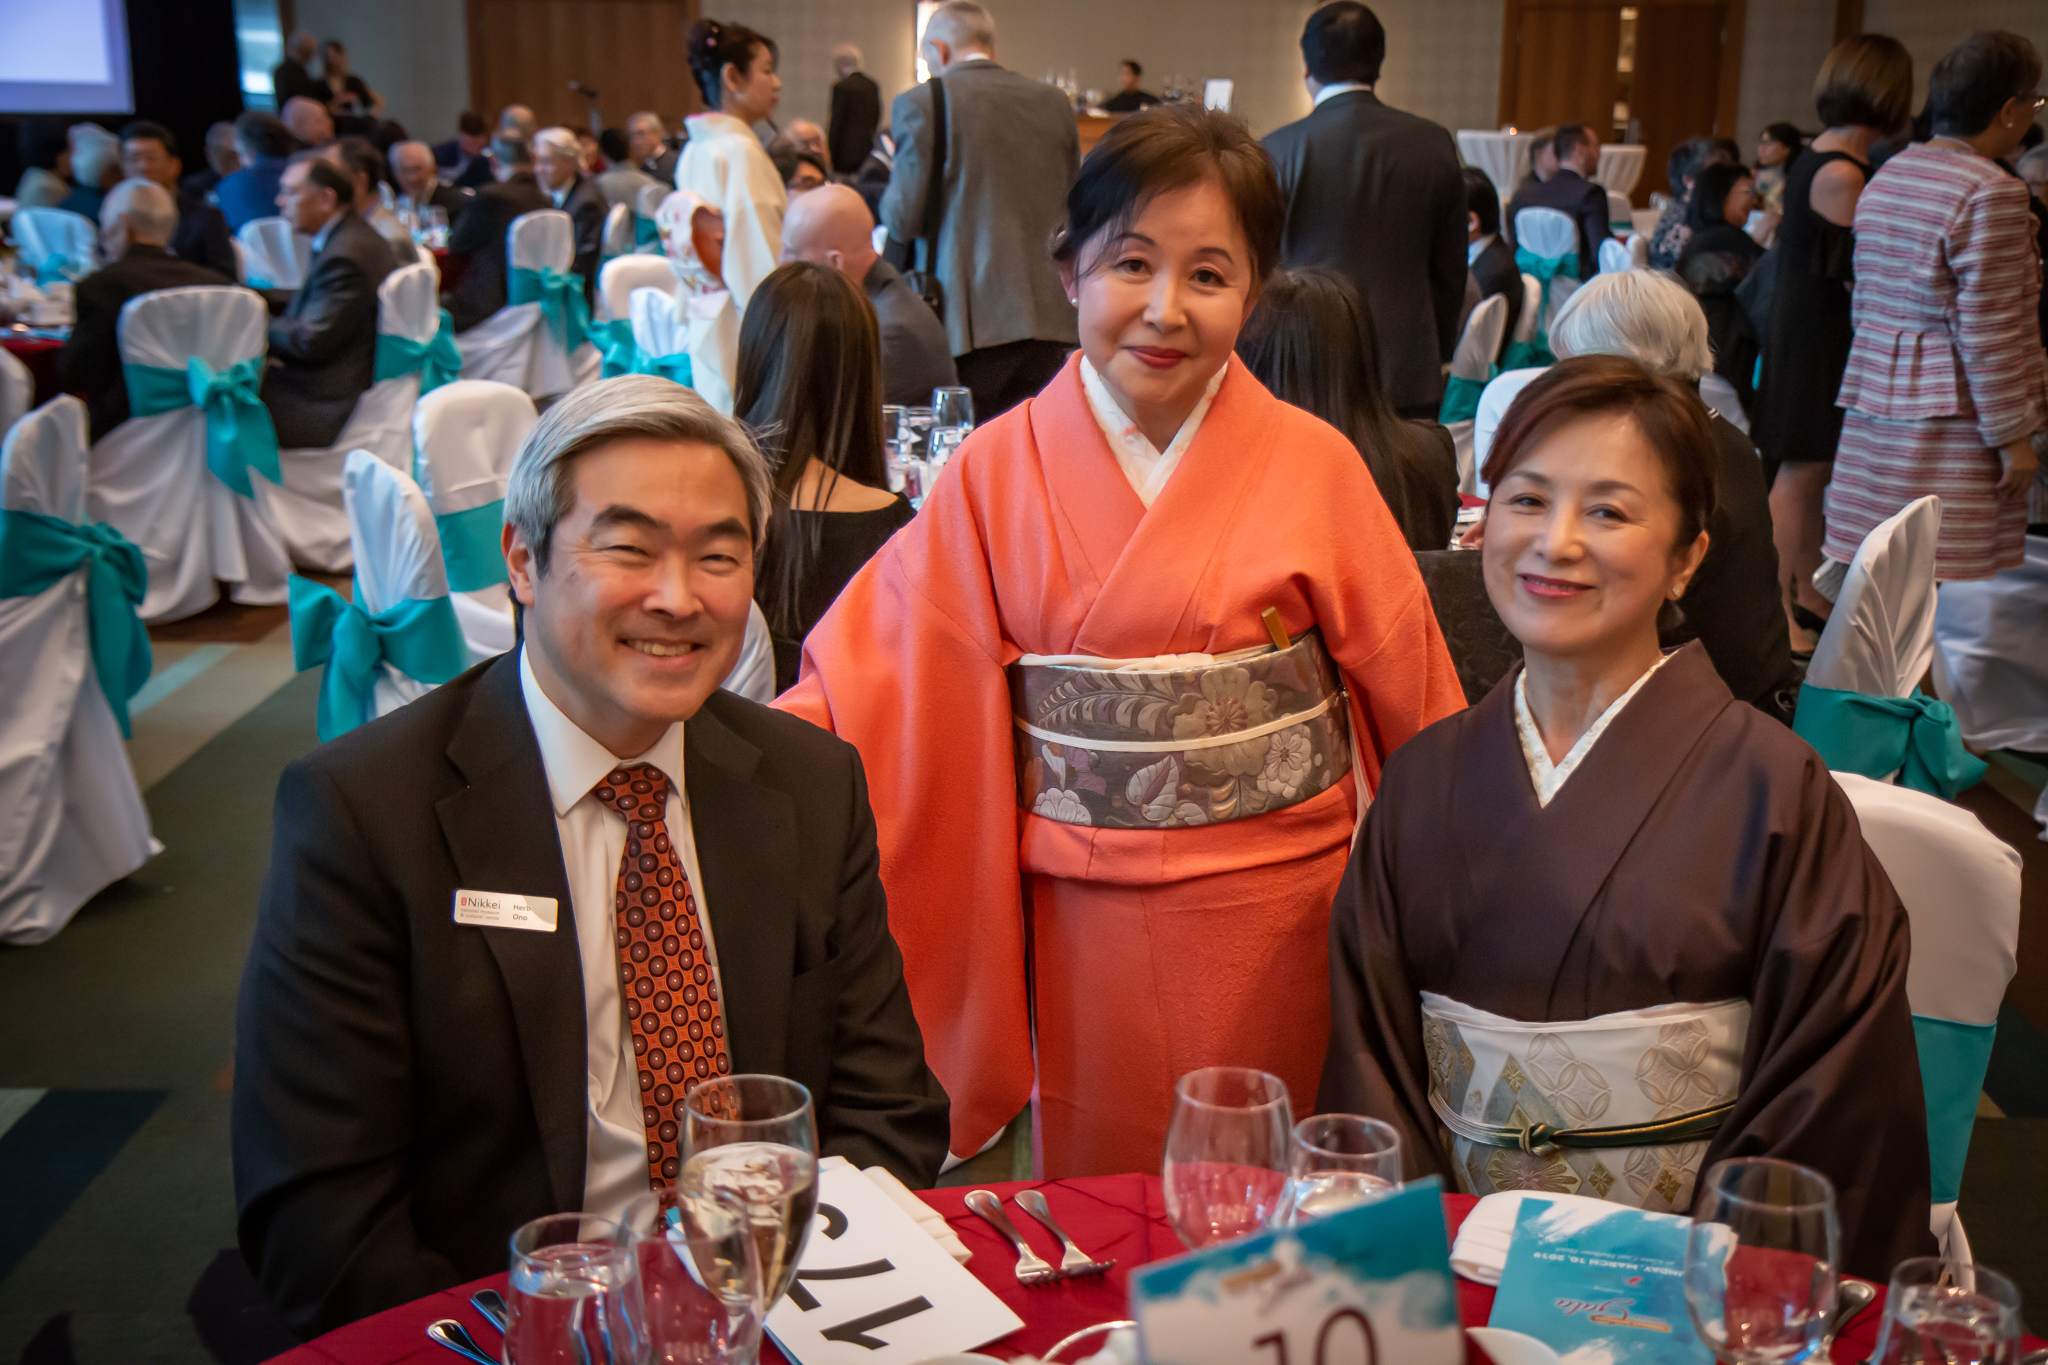 190310 Sakura Gala 2019 17-09-44 - Photo by Adam PW Smith.jpg